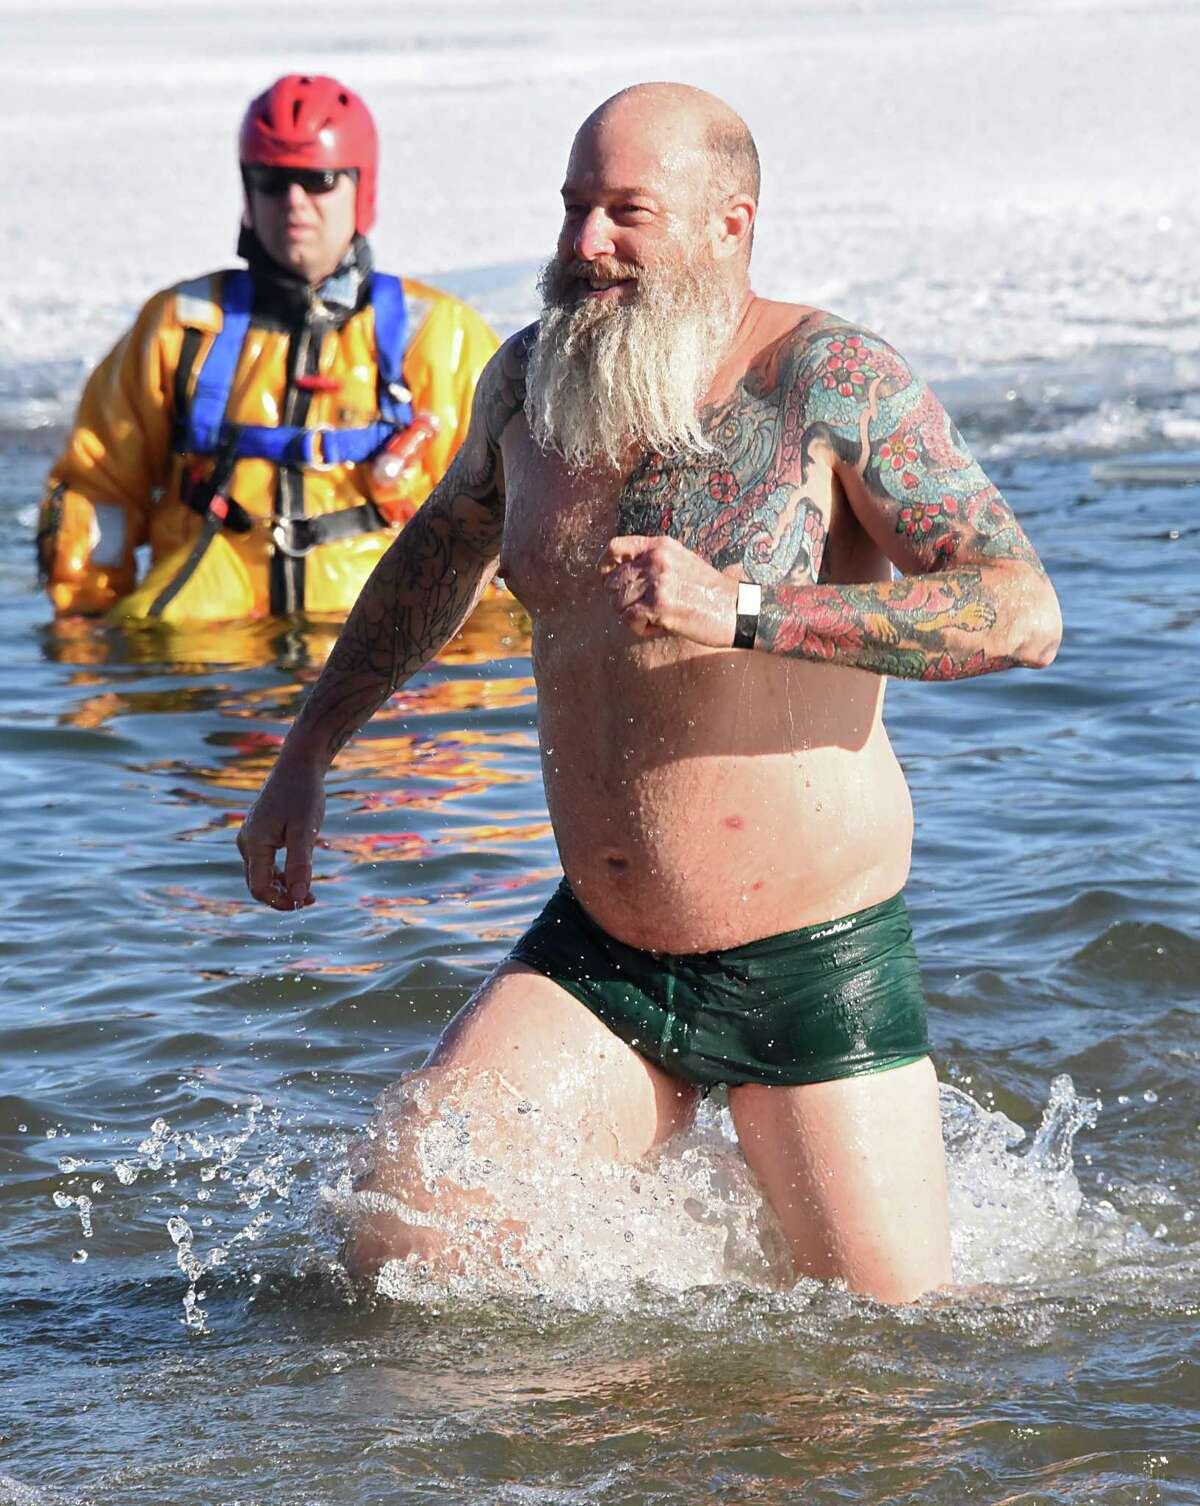 John Lawrence of Clifton Park braves the bitter cold and participates in the annual Polar Plunge at Shepard Park Beach on Monday, Jan. 1, 2018 in Lake George, N.Y. (Lori Van Buren / Times Union)